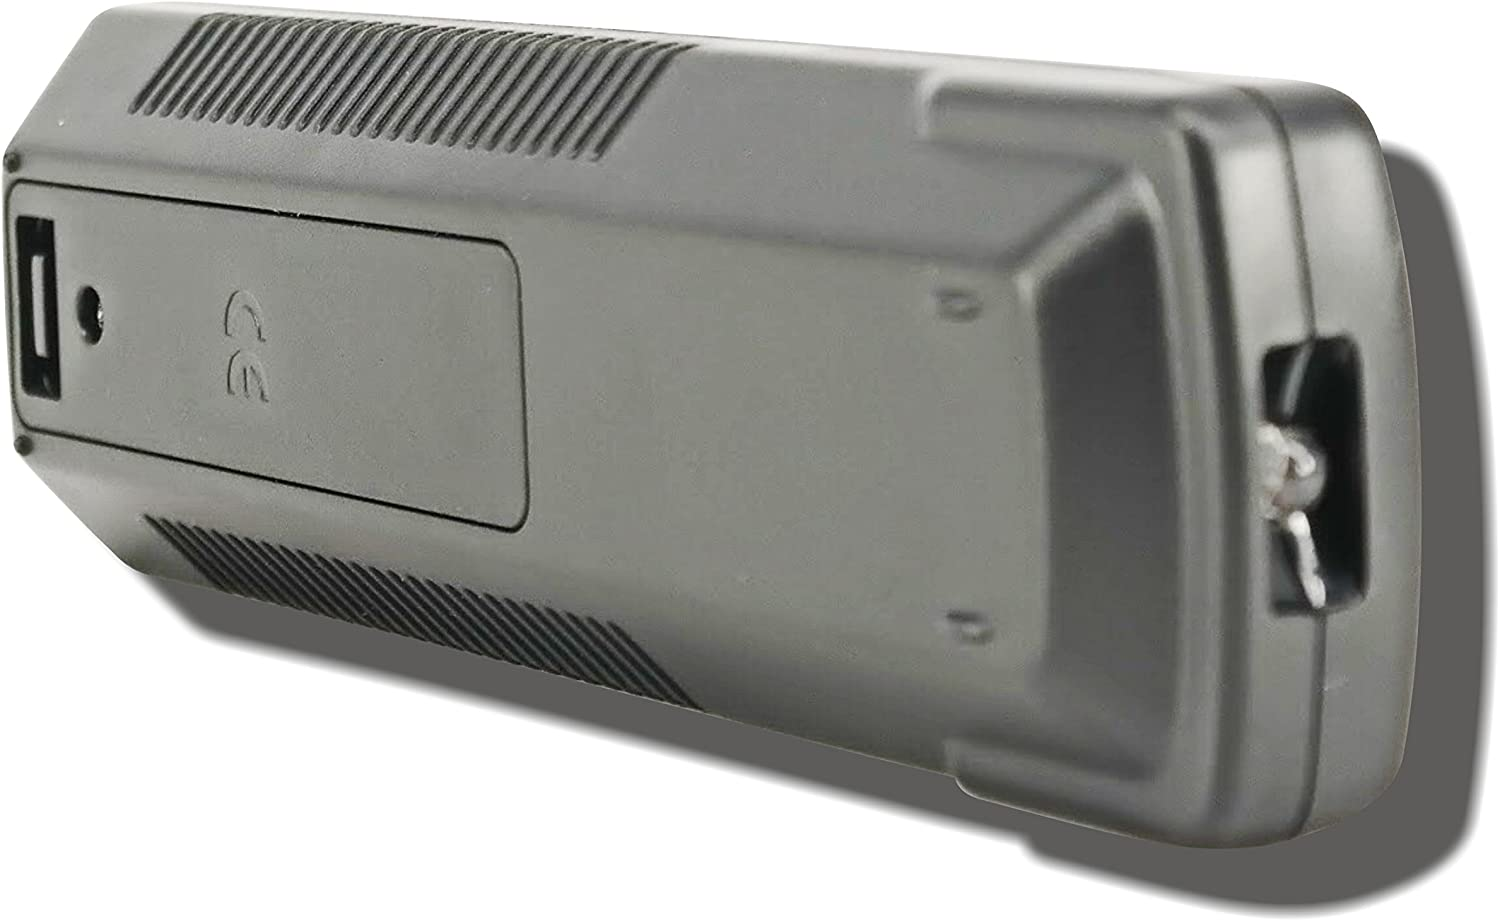 TeKswamp Video Projector Remote Control (Black) for Sony VPL-FH30